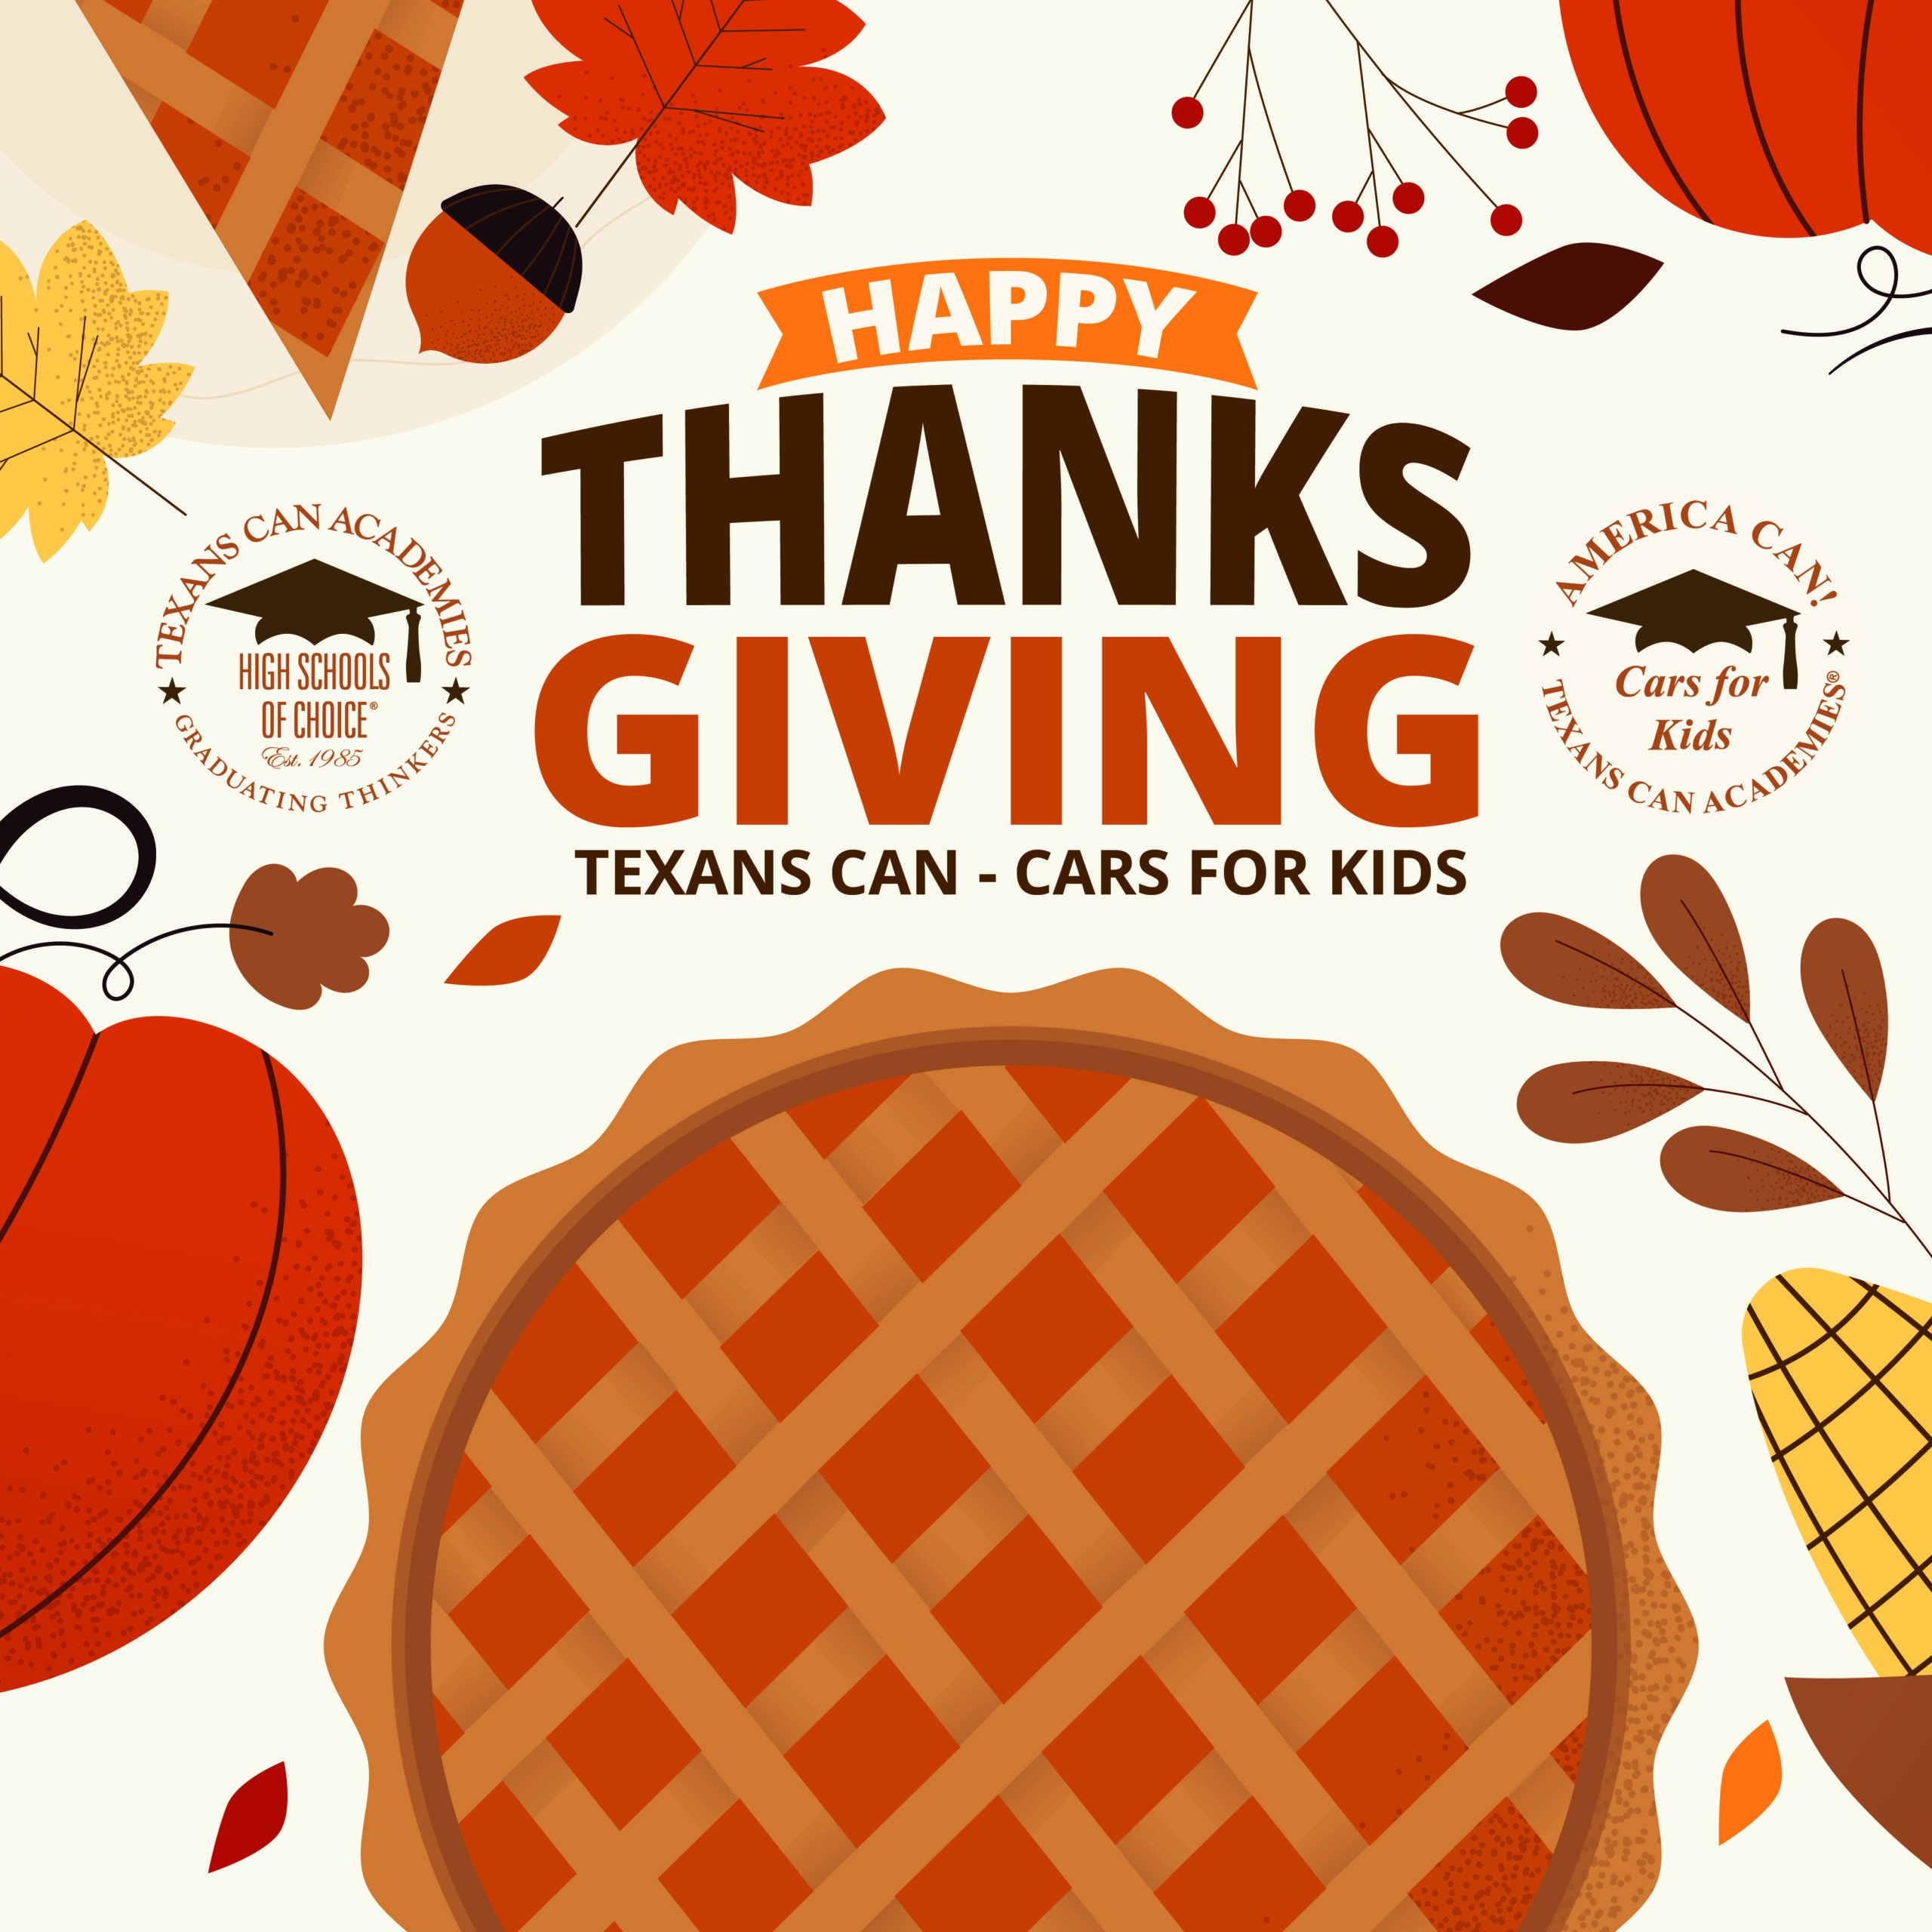 Happy Thanksgiving from Texans Can Academies